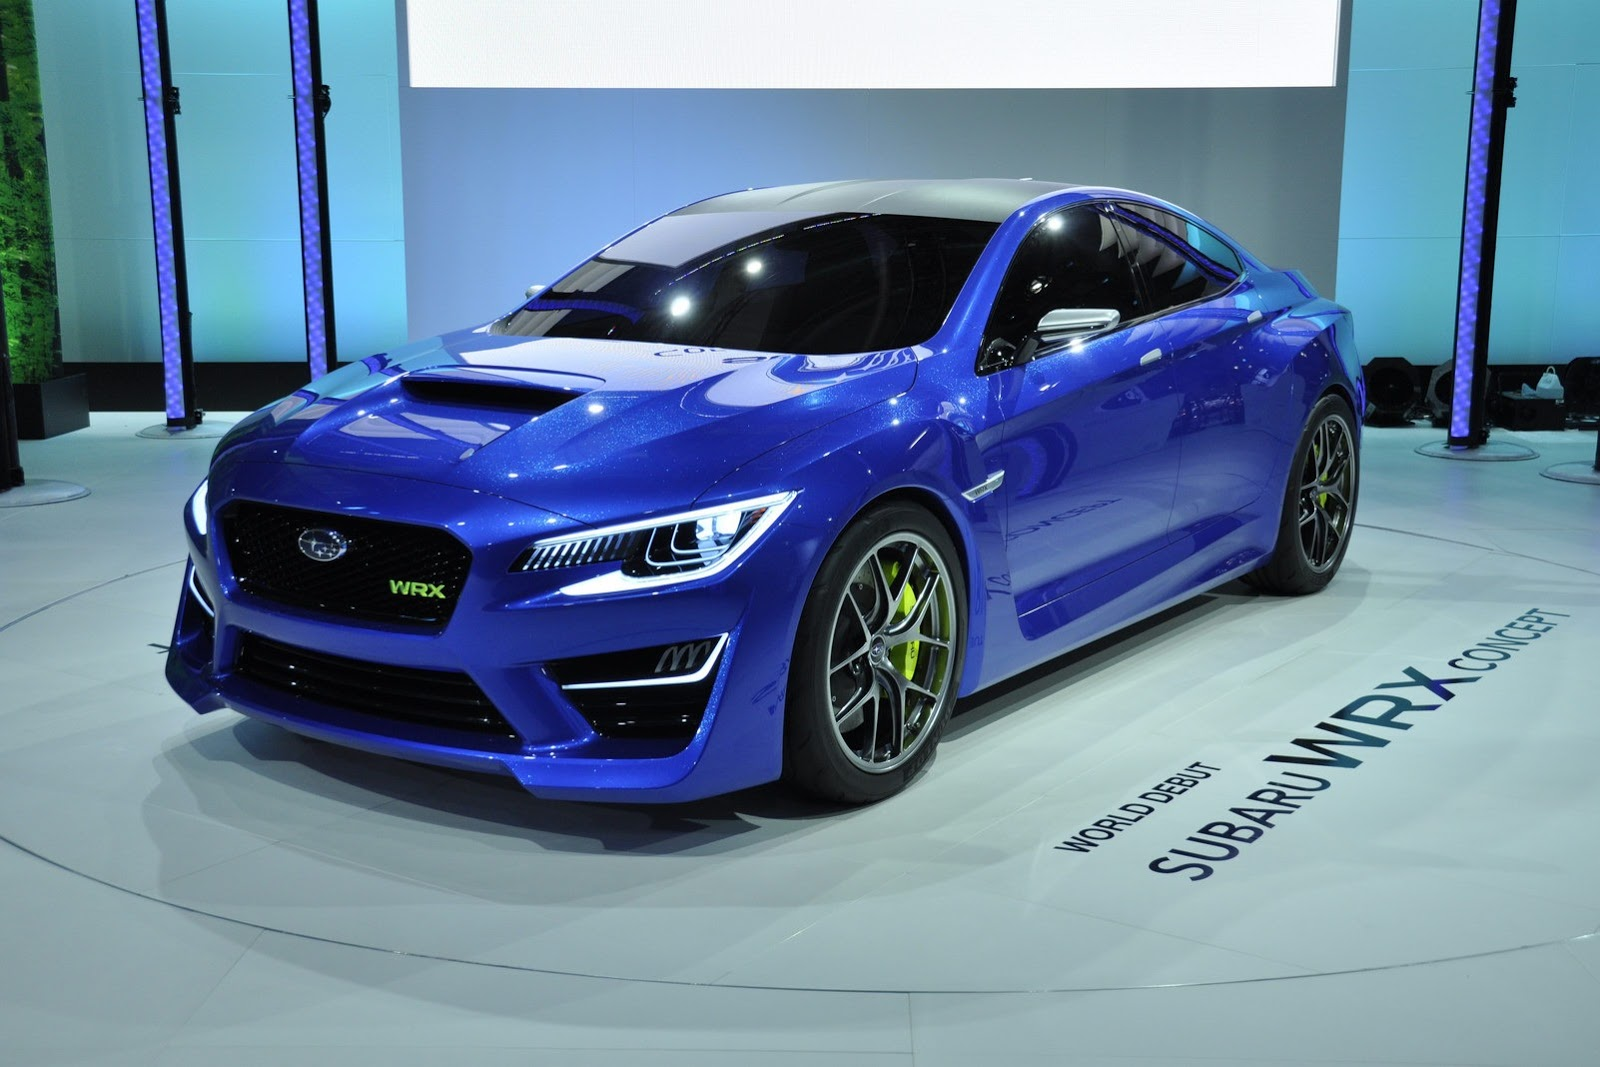 File:Subaru-WRX-Concept-Car.jpg - Wikimedia Commons